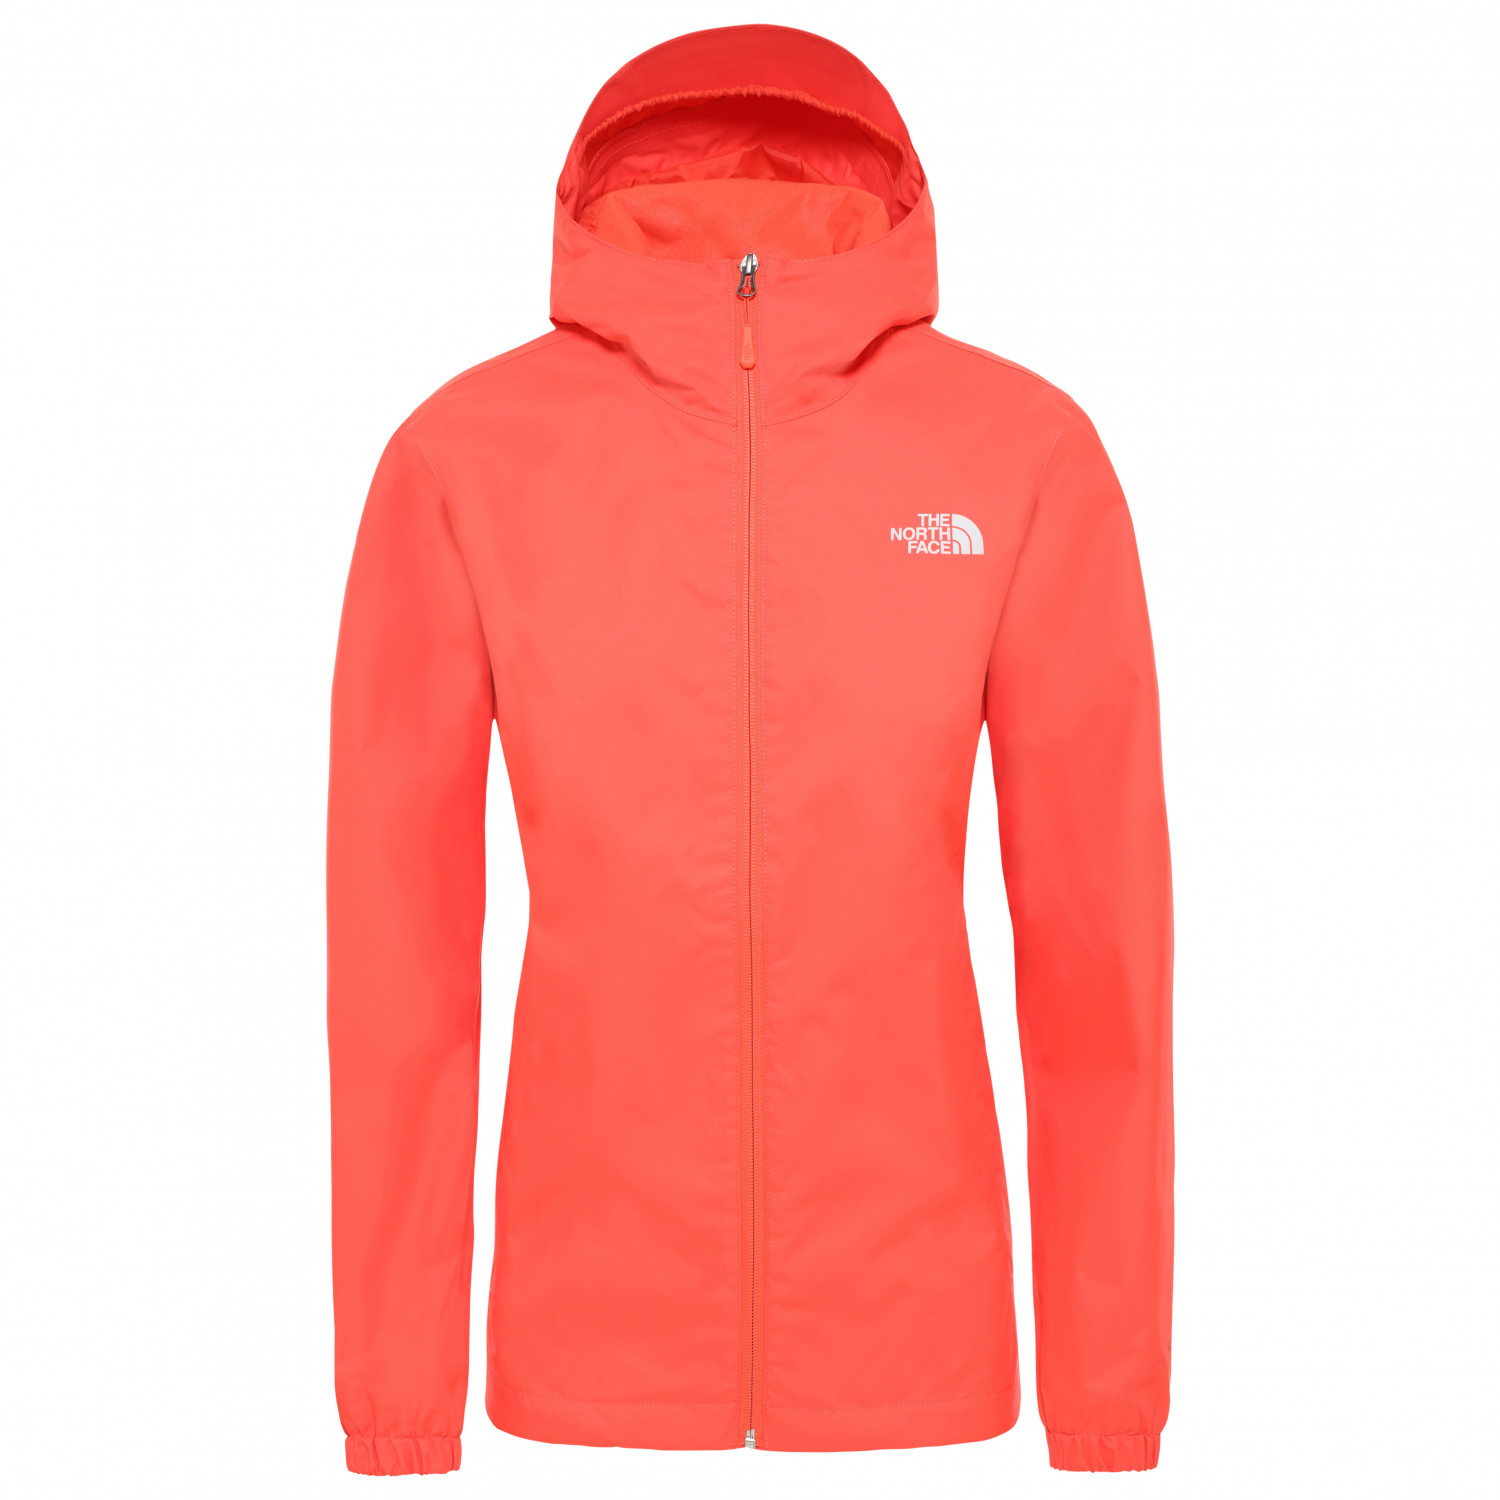 The North Face Quest Jacket Waterproof jacket Women's